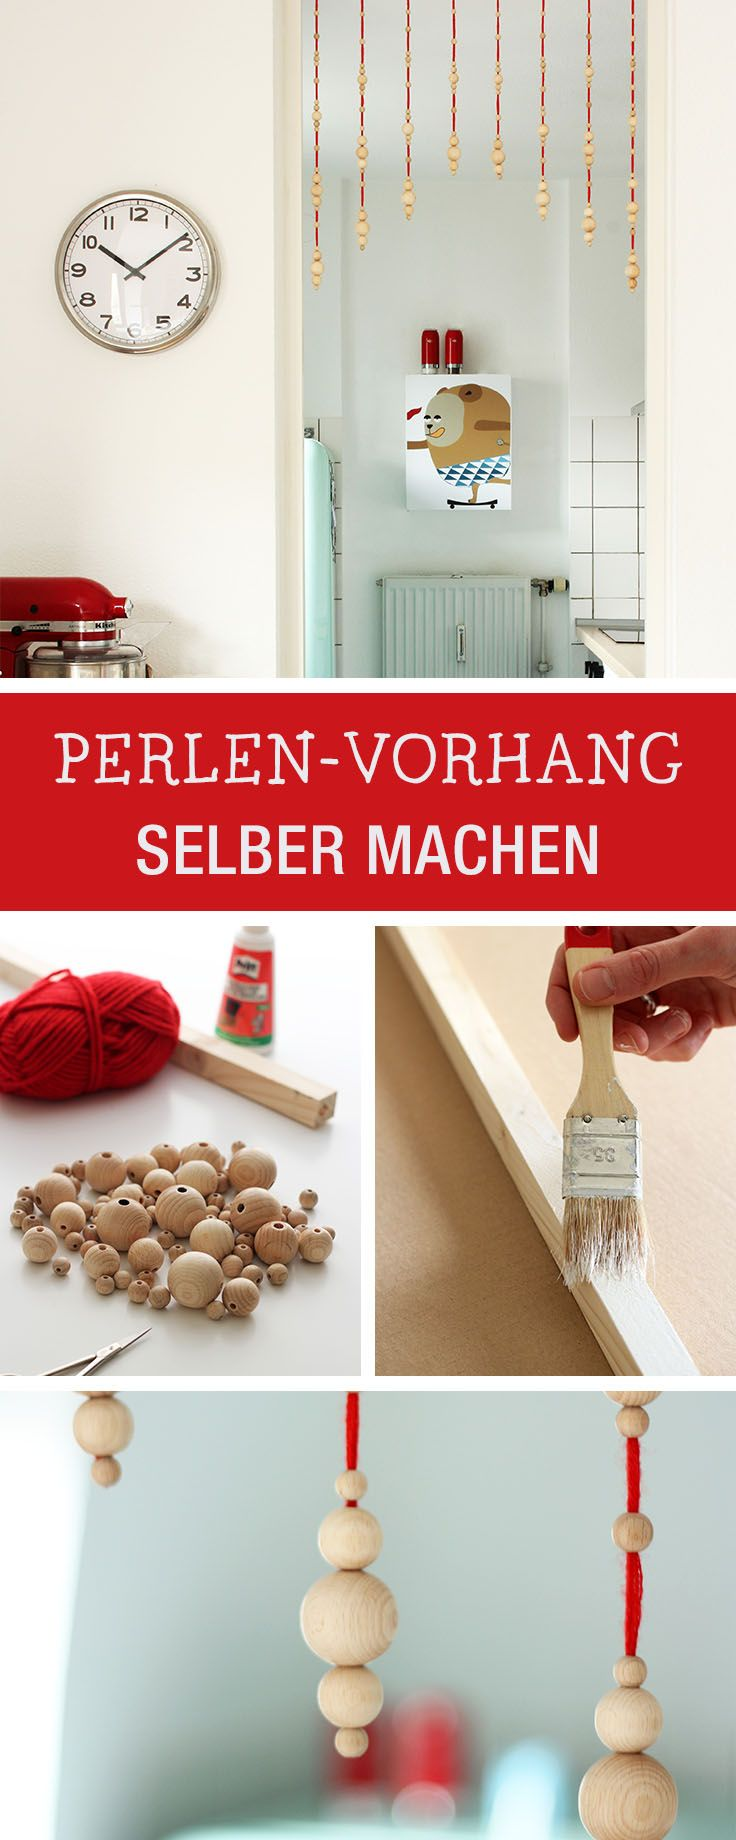 Kreative DIY-Anleitung: Perlenvorhang aus Holzperlen selbermachen, Boho Wohndeko / crafty inspiration: beaded curtain made of wooden pearls via DaWanda.com